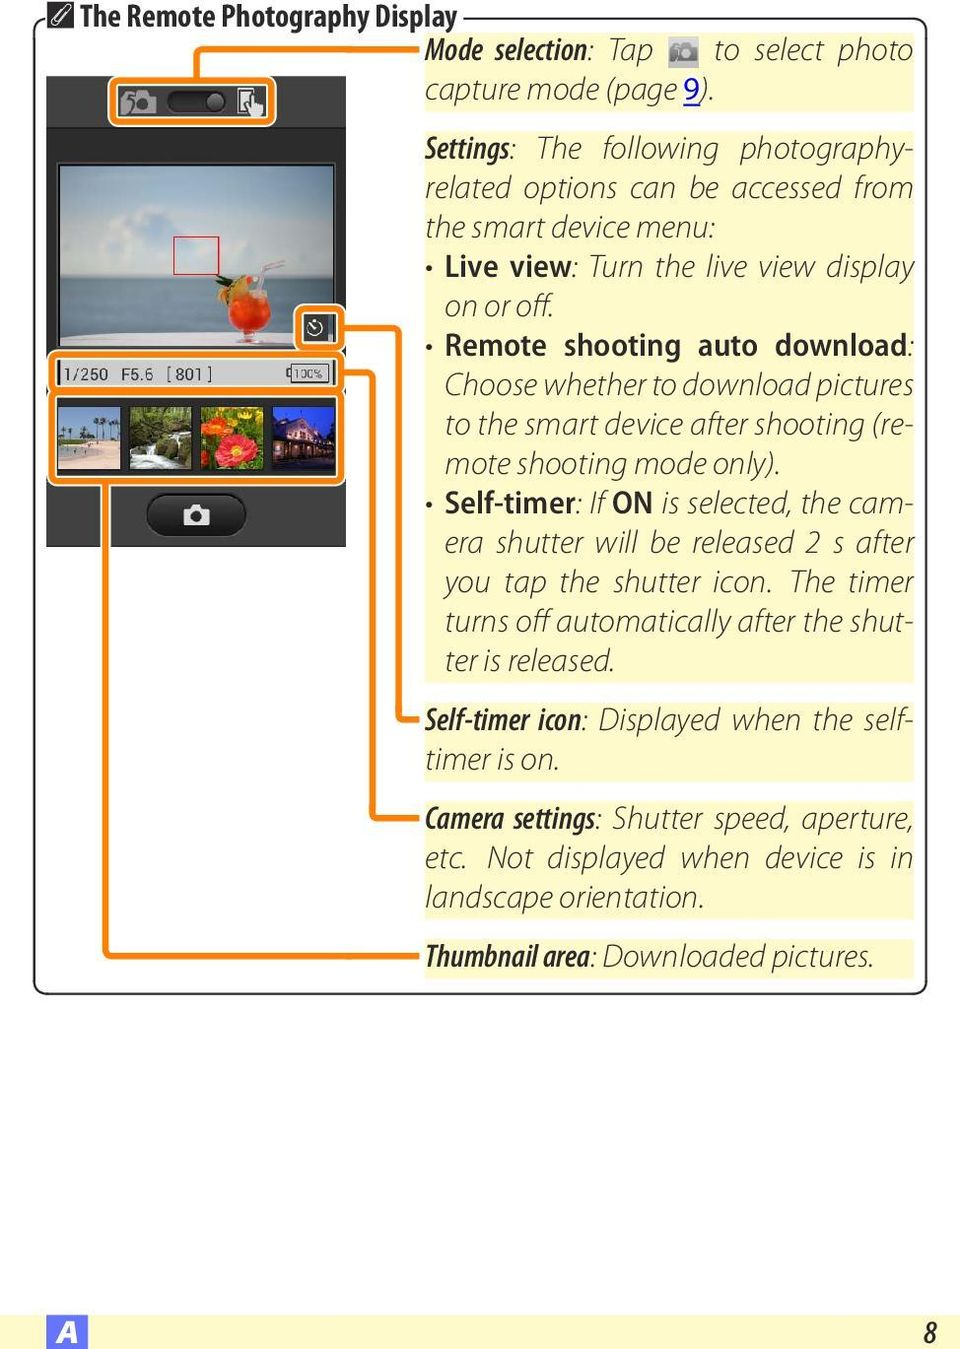 Remote shooting auto download: Choose whether to download pictures to the smart device after shooting (remote shooting mode only).